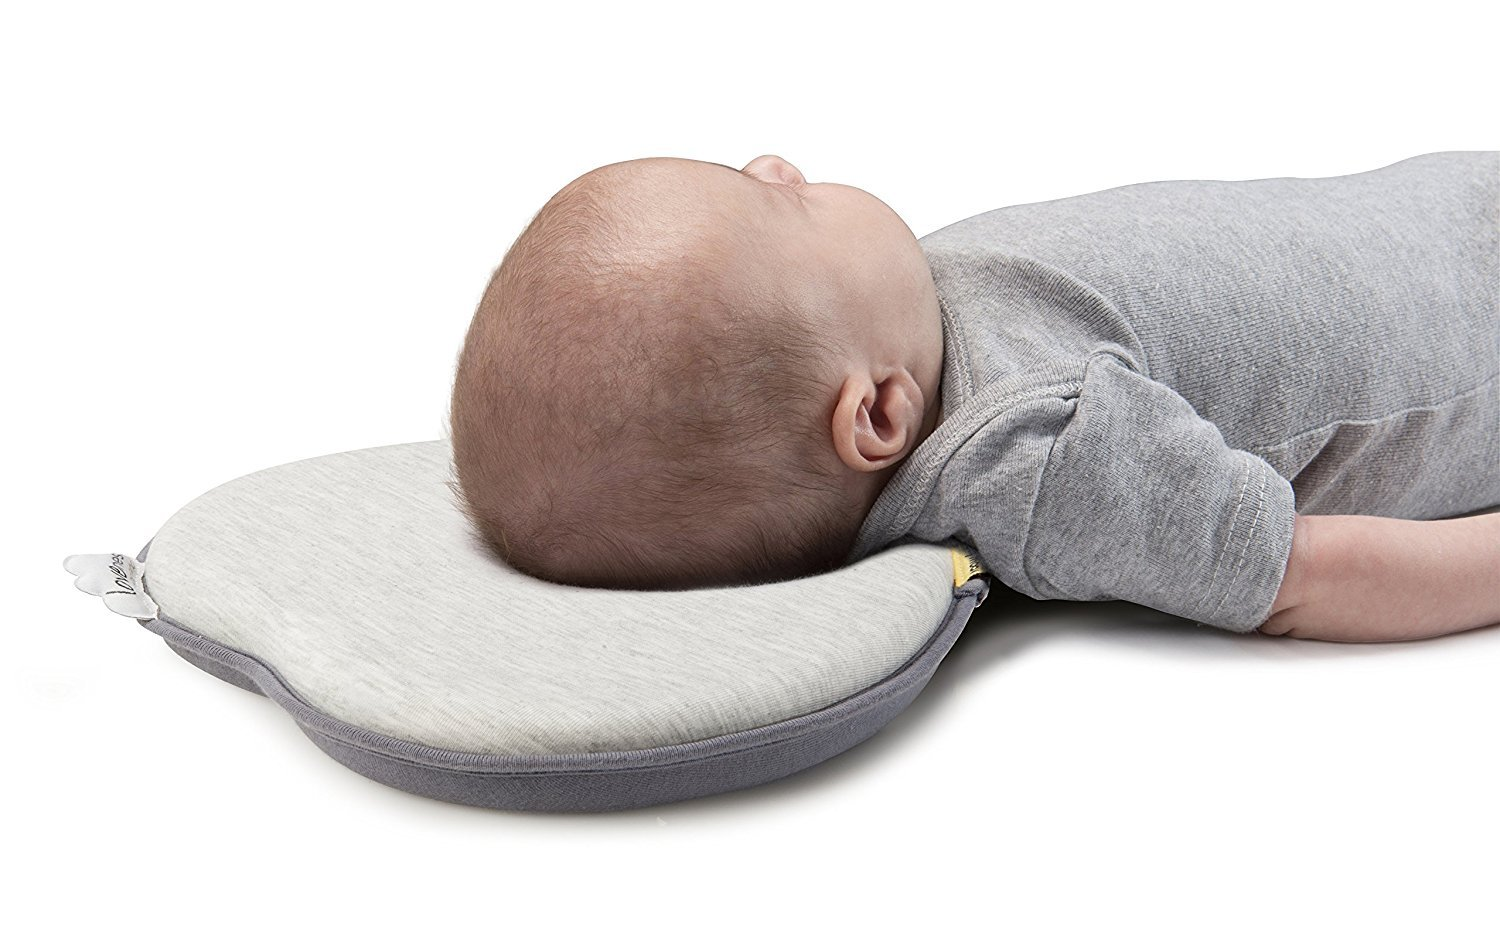 Baby Head Shaping Pillow for Newborn AiKiddo Breathable Memory Foam Pillow for Sleeping Head back Infant Protective Pillow with Organic Cotton Pillowcase-Prevents Flat Head Syndrome or Plagiocephaly green purple